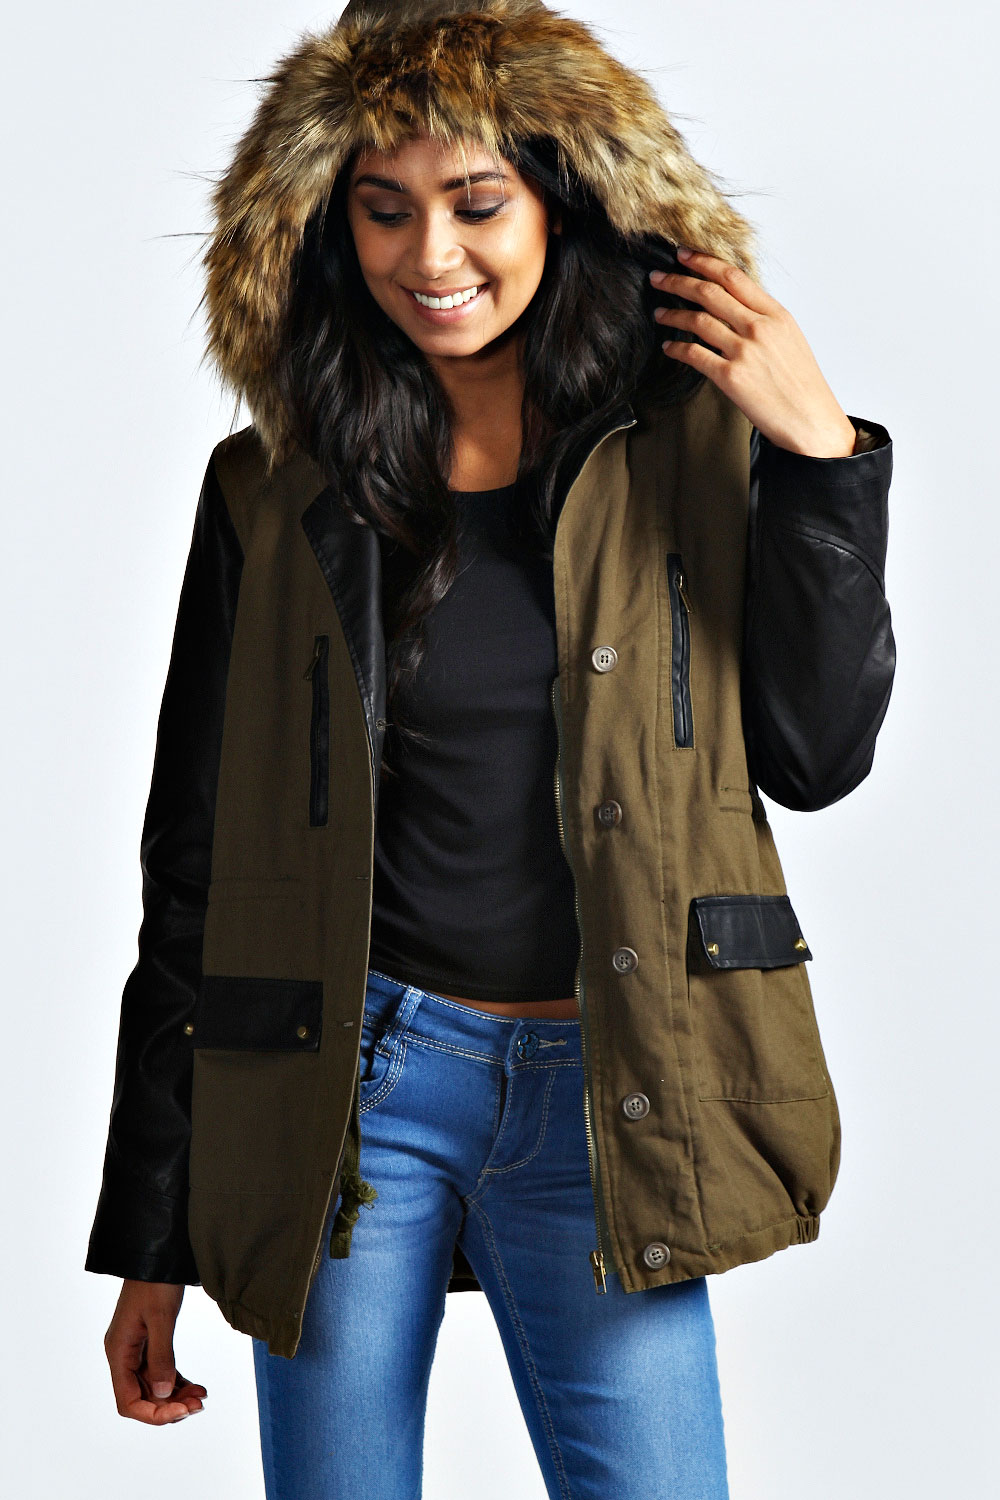 Discover the range of women's parkas from ASOS. Shop from a variety of parkas jackets and coats in a variety of colors and lengths today. your browser is not supported. Vero Moda Petite Faux Fur Hooded Parka. $ Only quilted metallic detail padded jacket. $ Vero Moda Cropped Hooded Padded Jacket. $